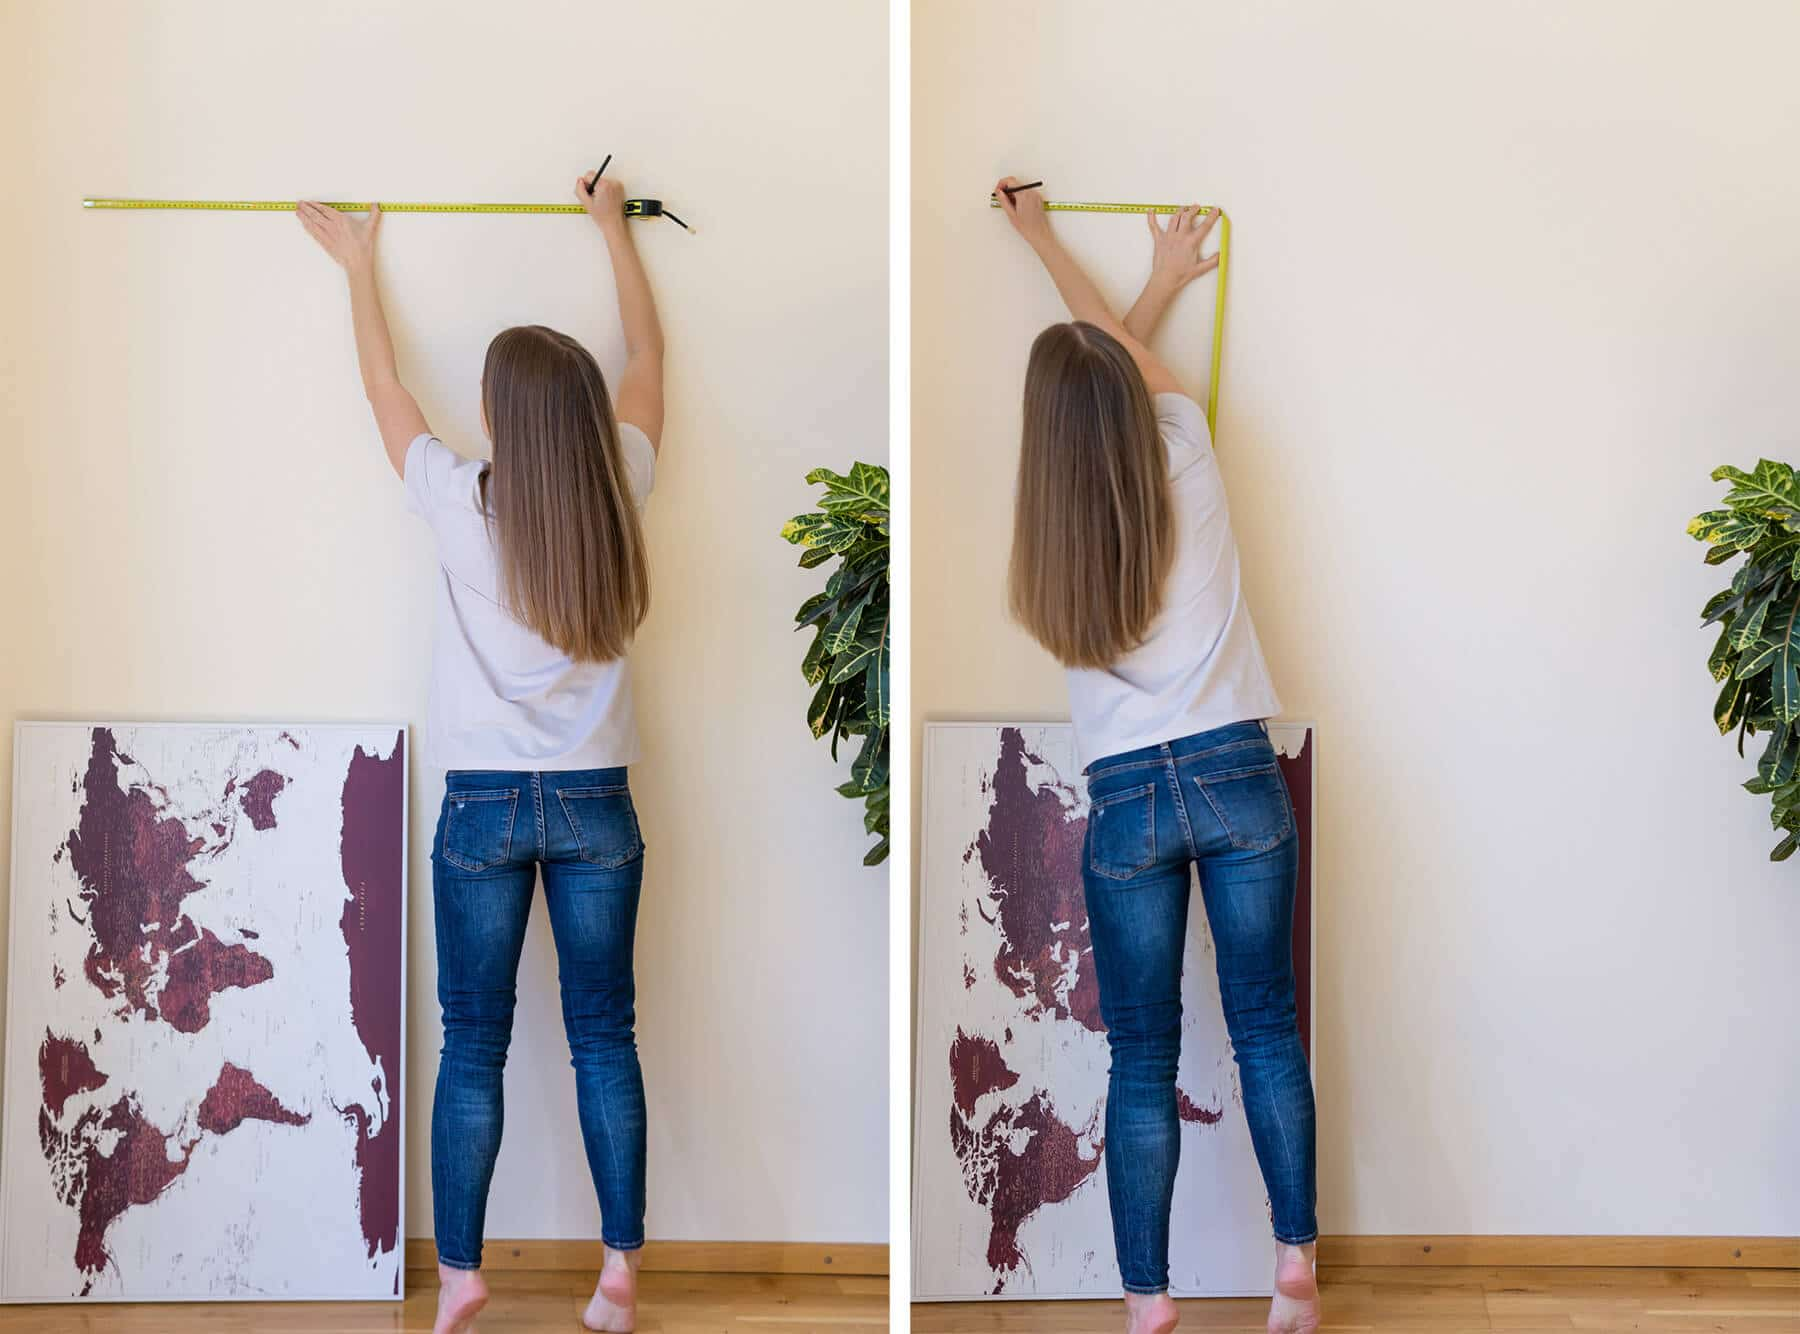 how to hang straight map on wall